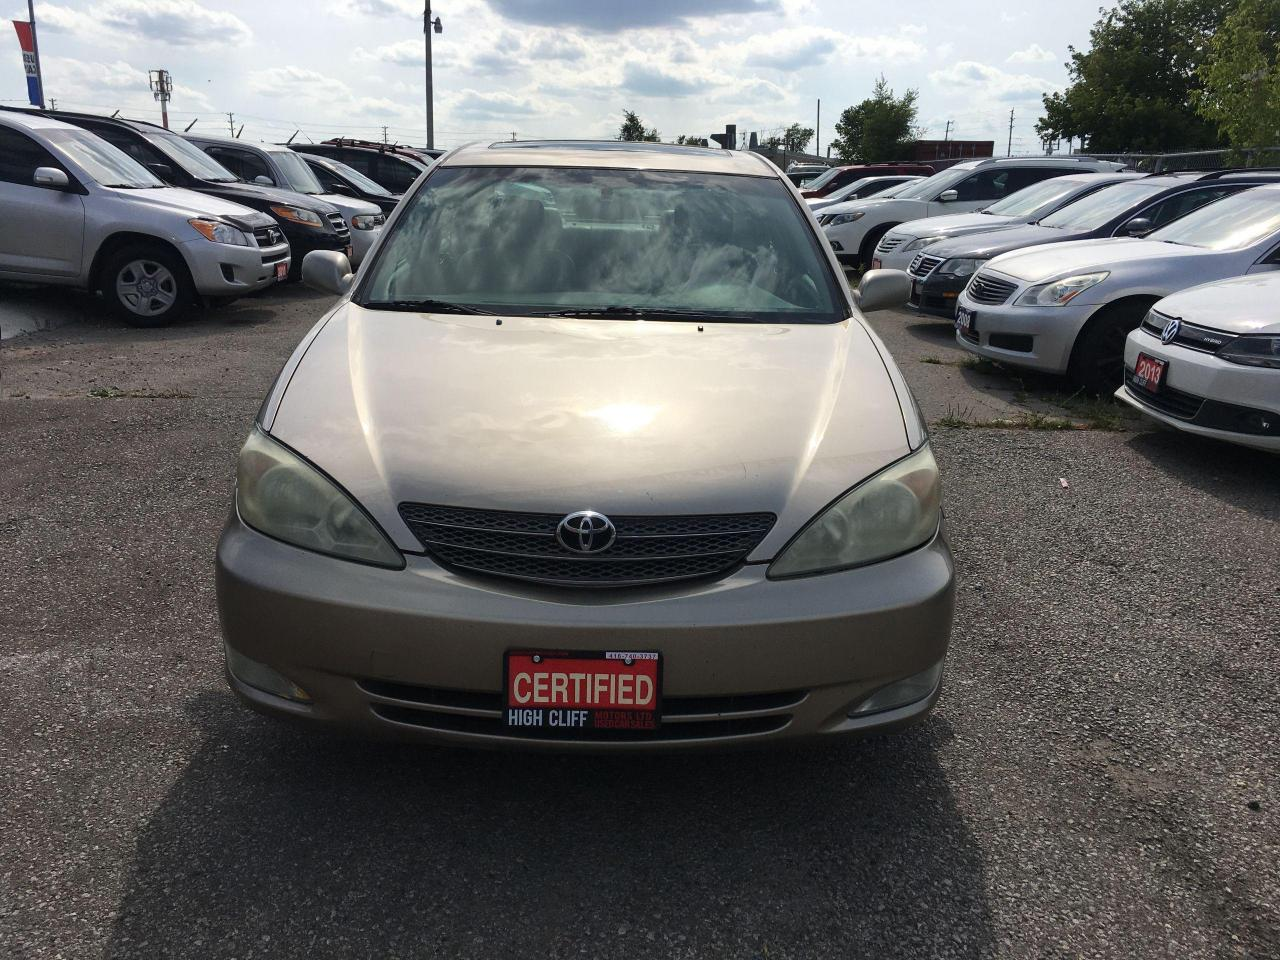 used 2002 toyota camry xle for sale in etobicoke, ontario carpages.ca